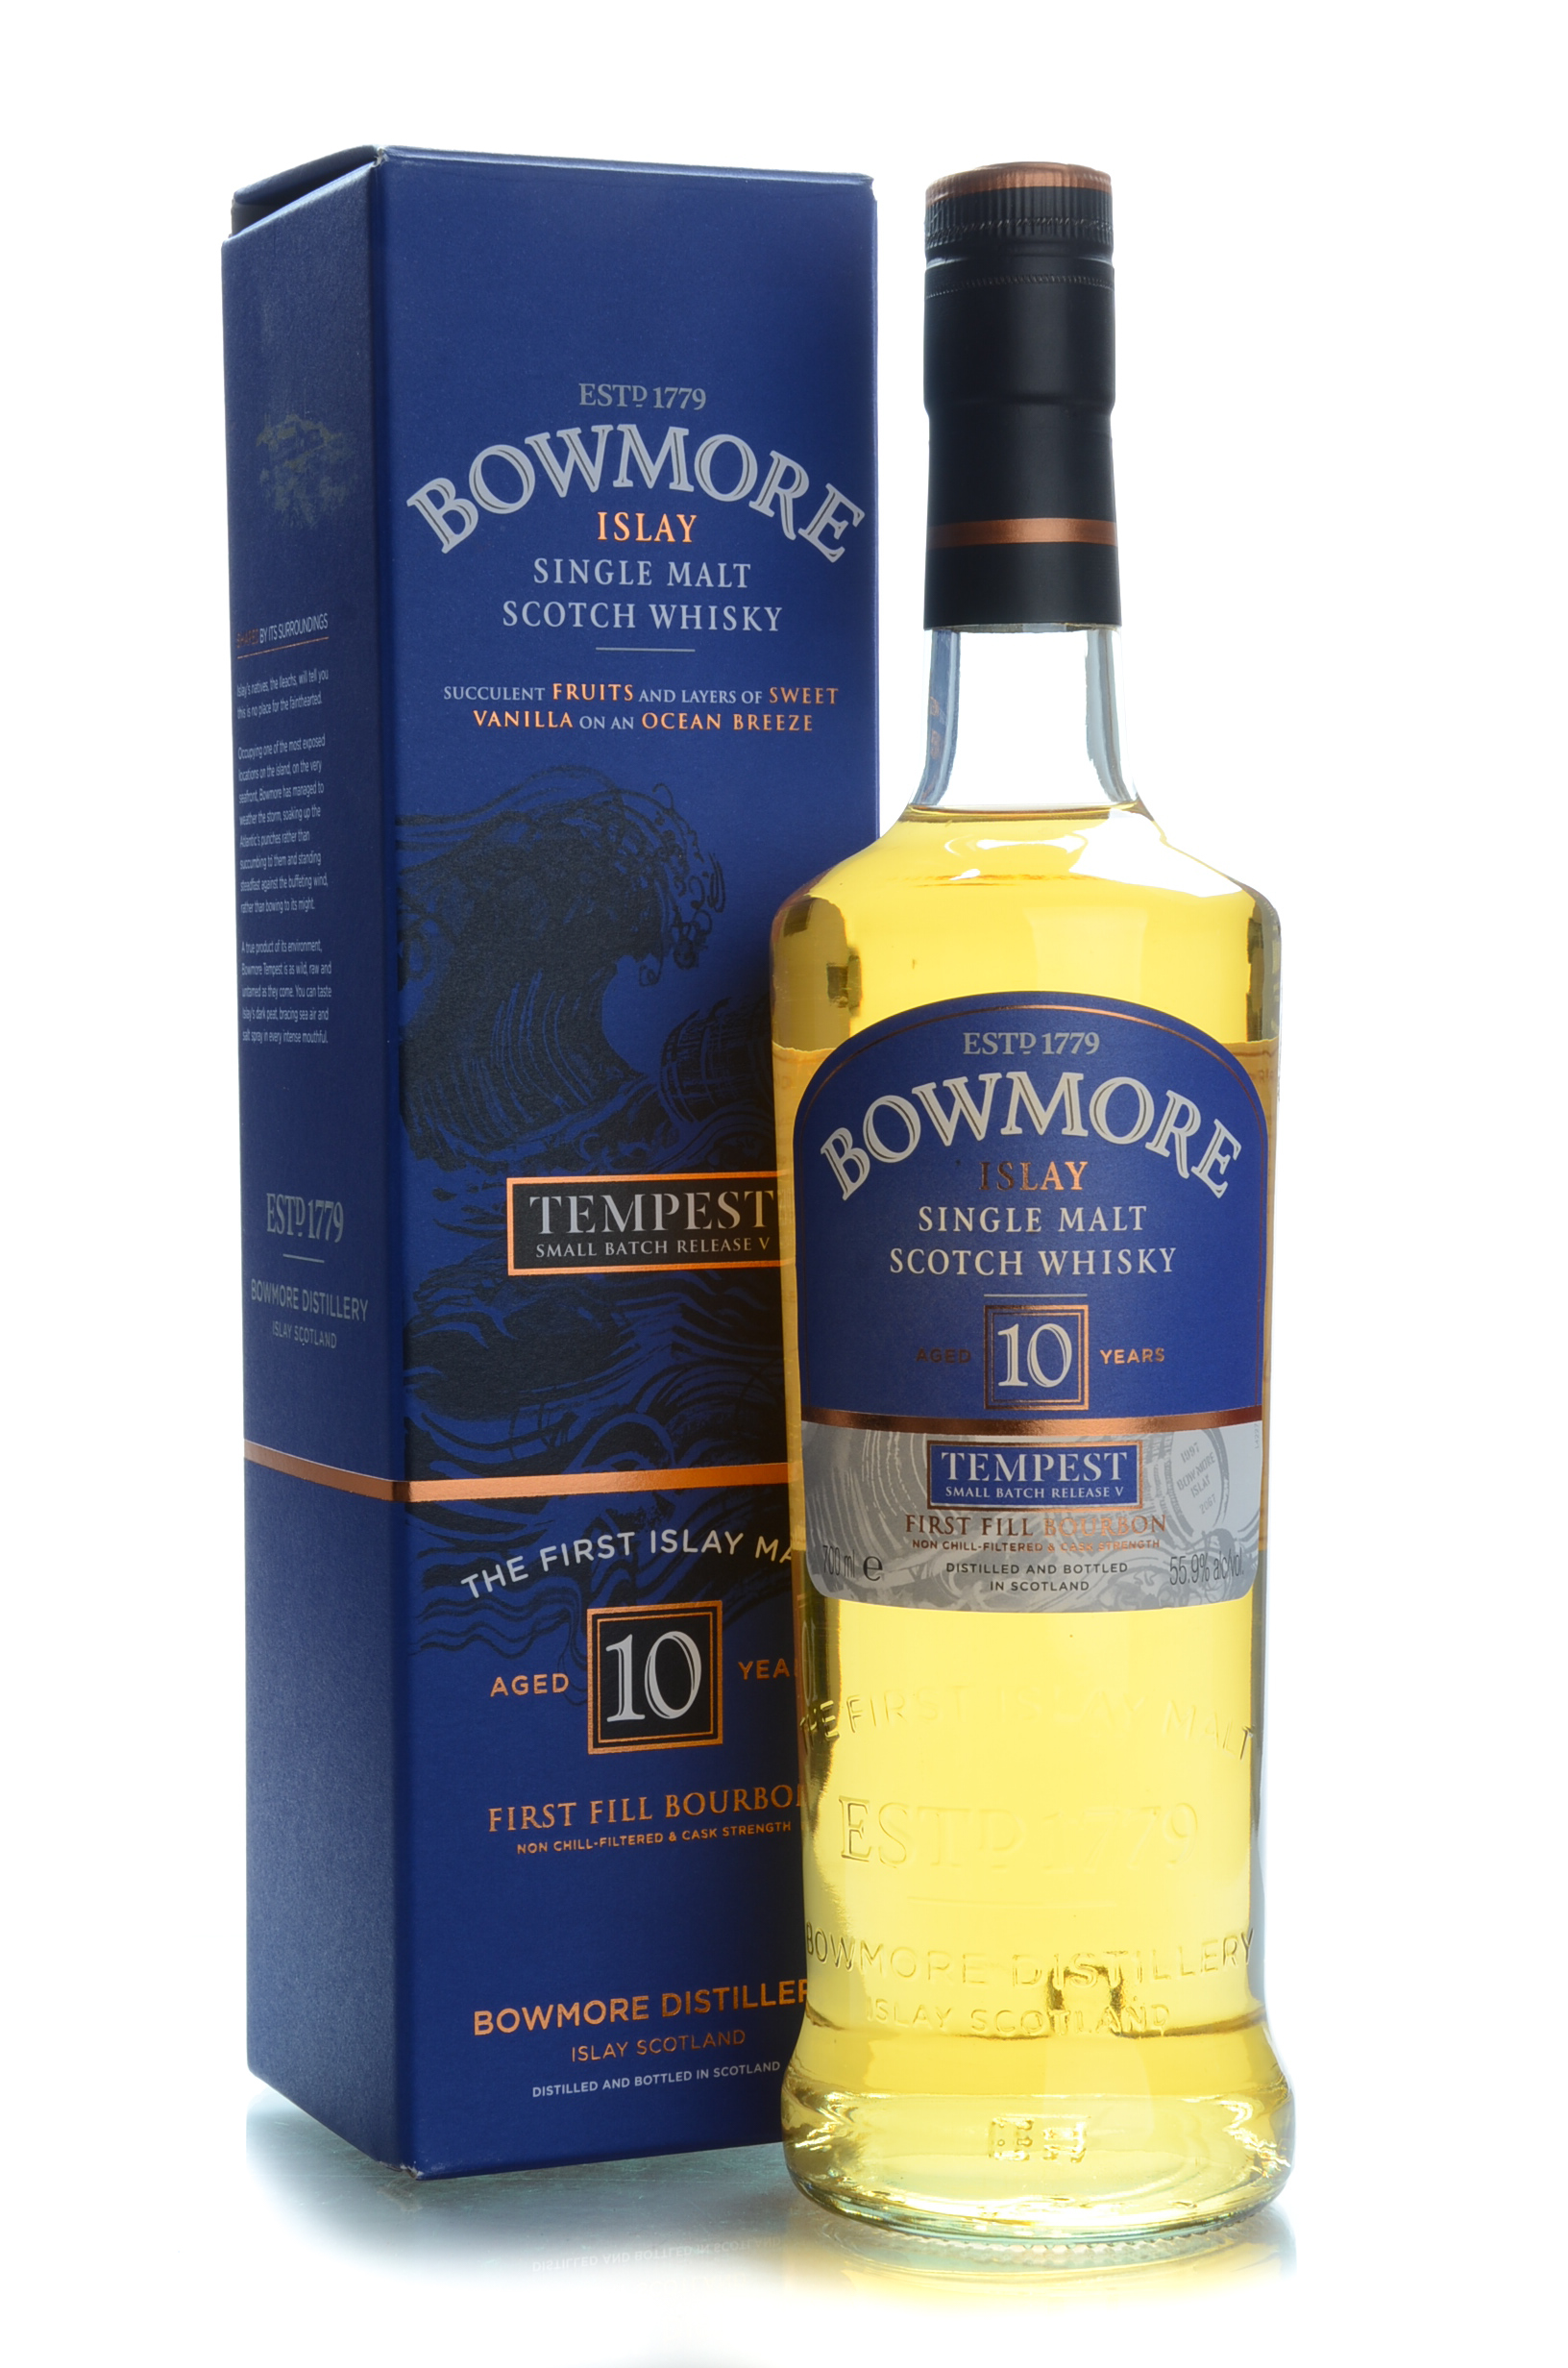 Bowmore 10y tempest release 5 55.9